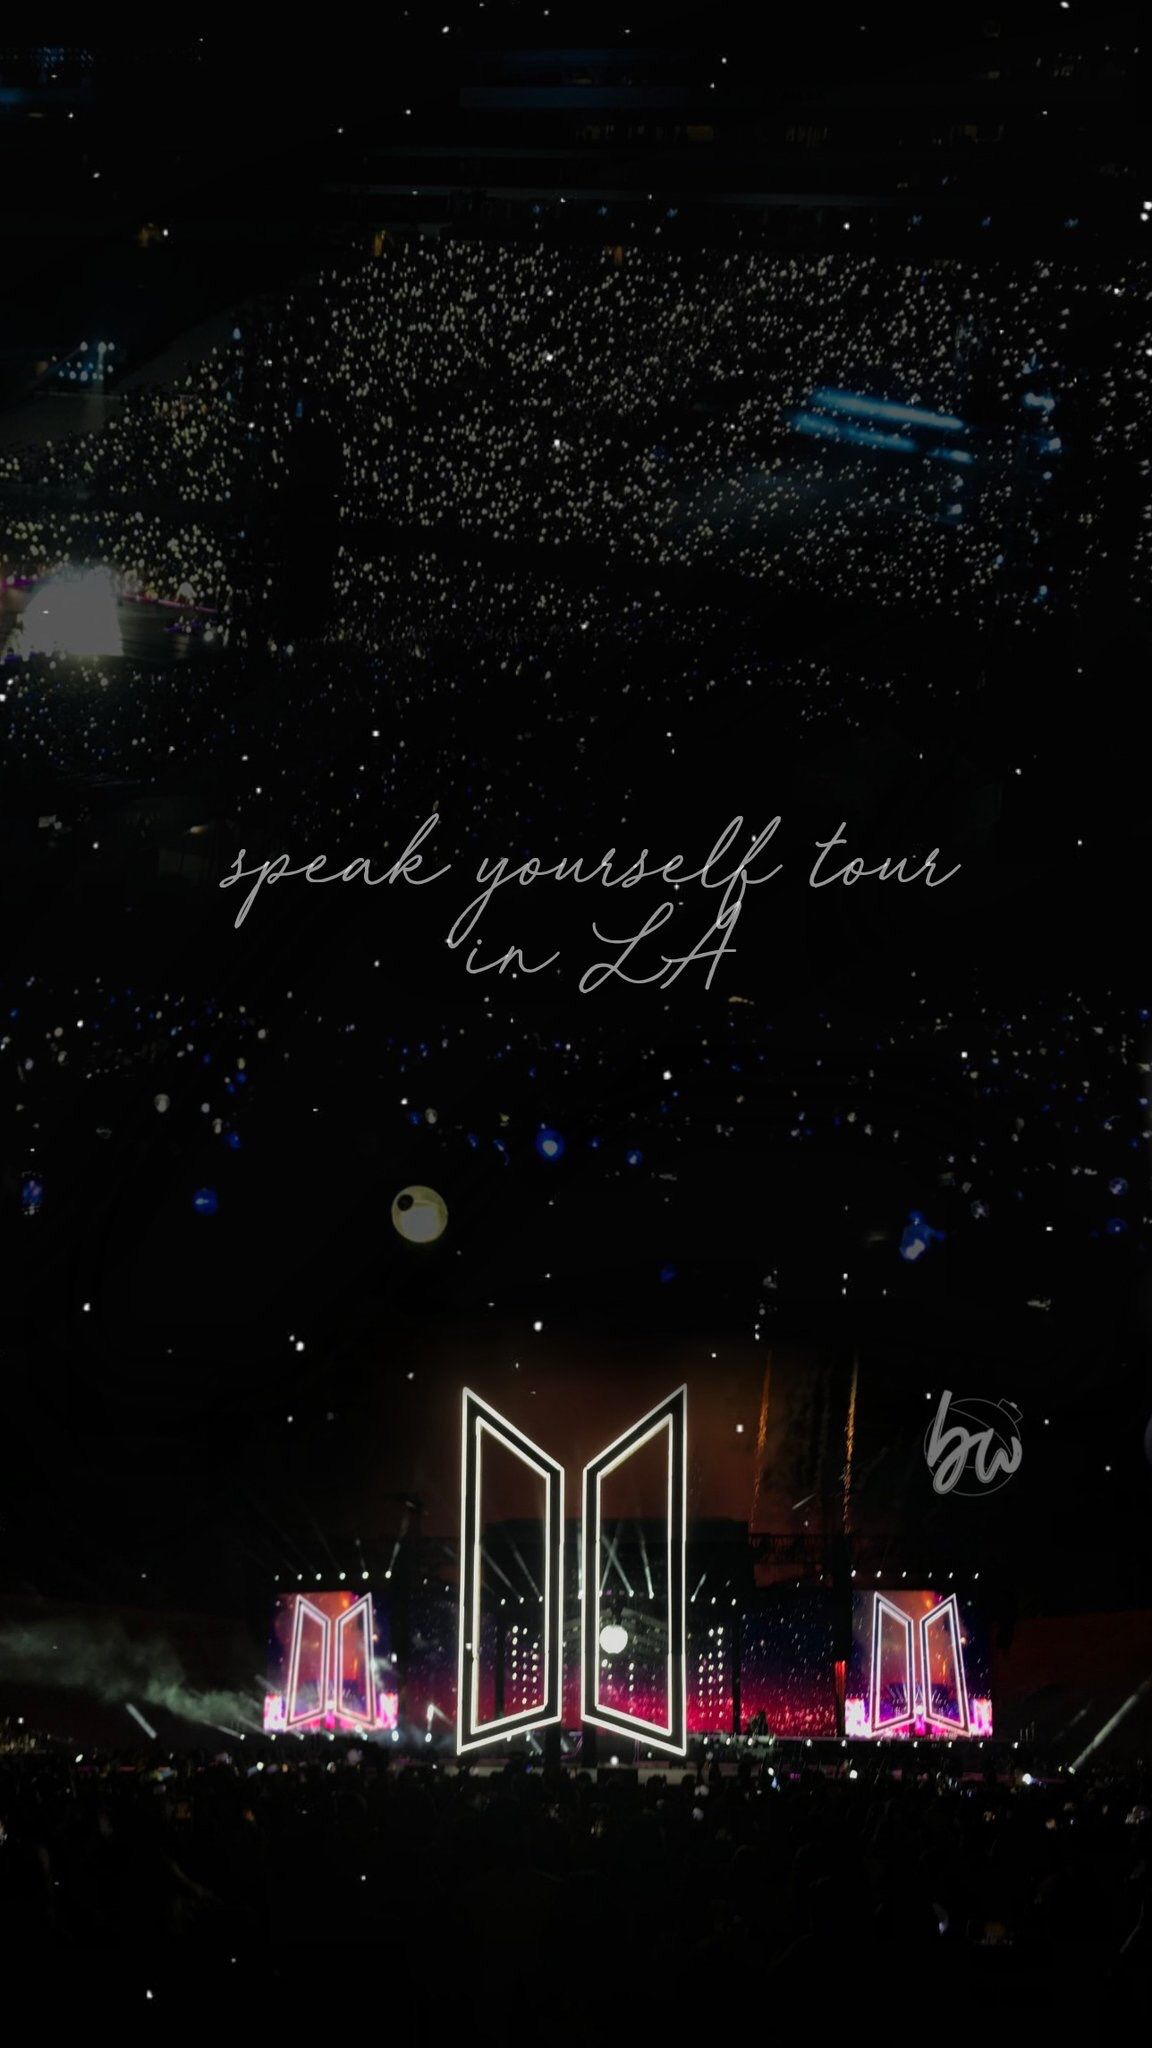 Pin By Star On Bts Wallpapers Bts Wallpaper Phone Wallpaper Bts Army Bts wallpaper whatsapp dp